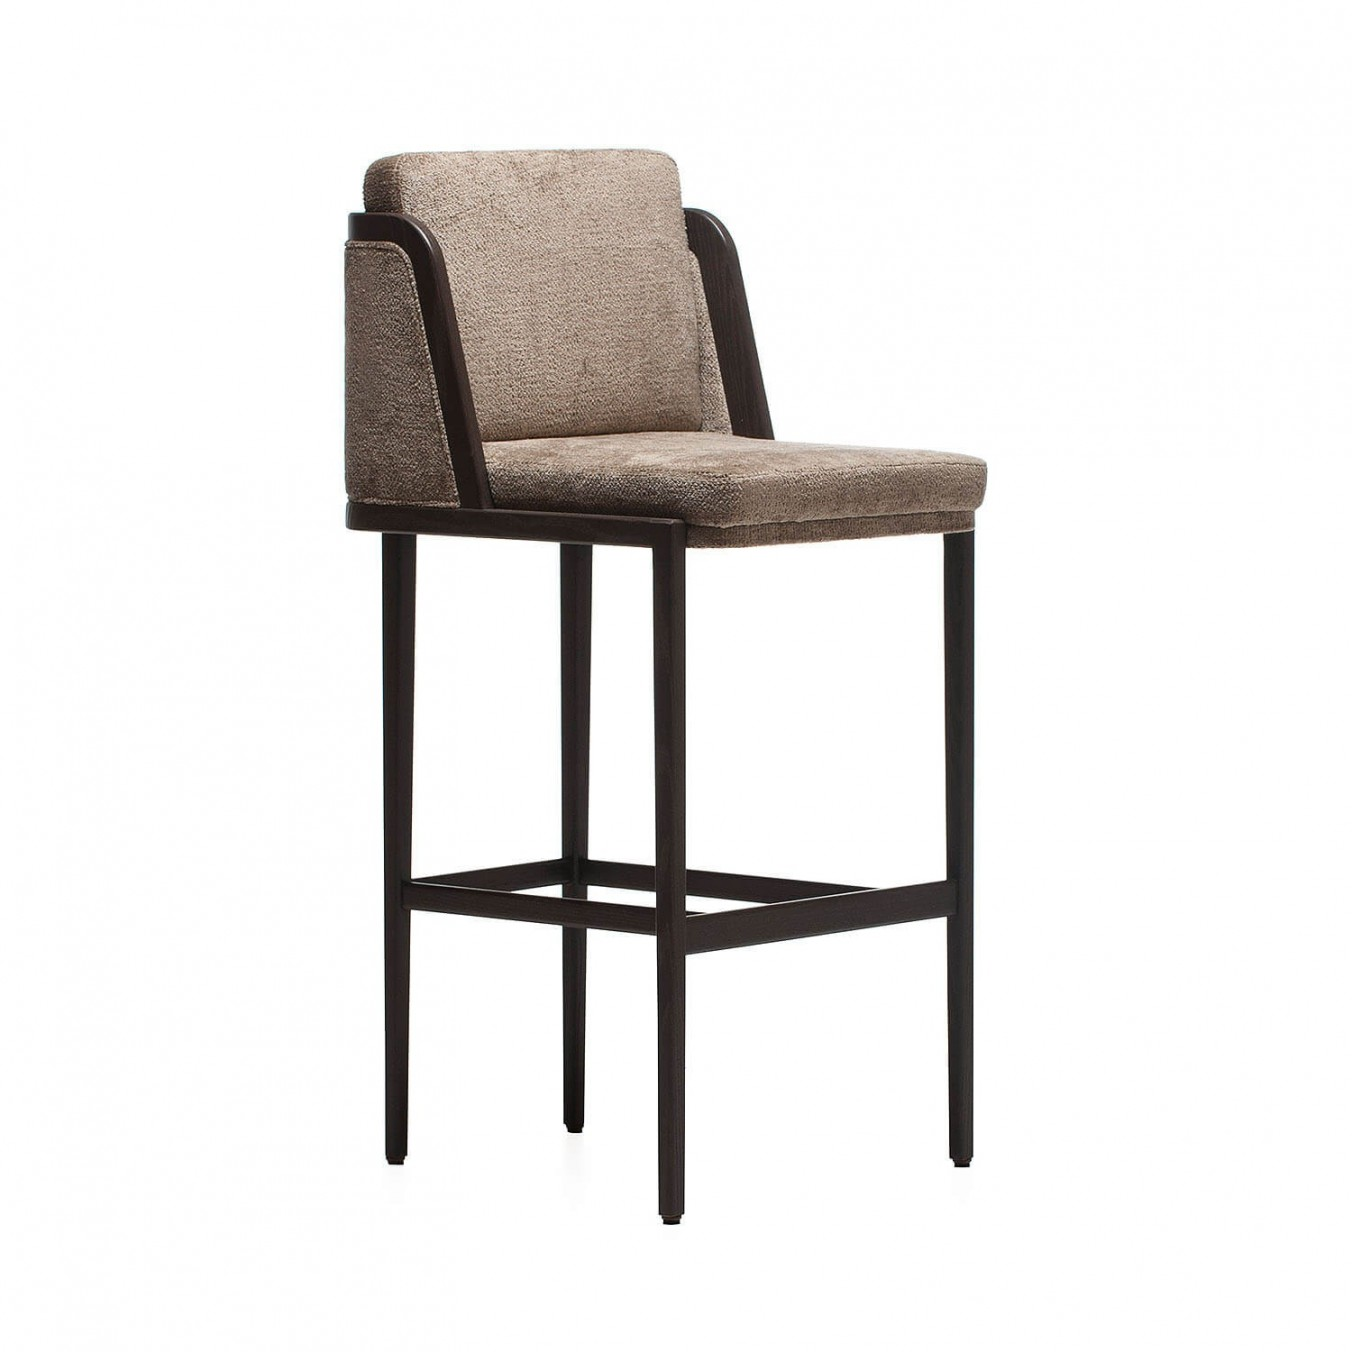 THRONE BARSTOOL WITH UPHOLSTERY